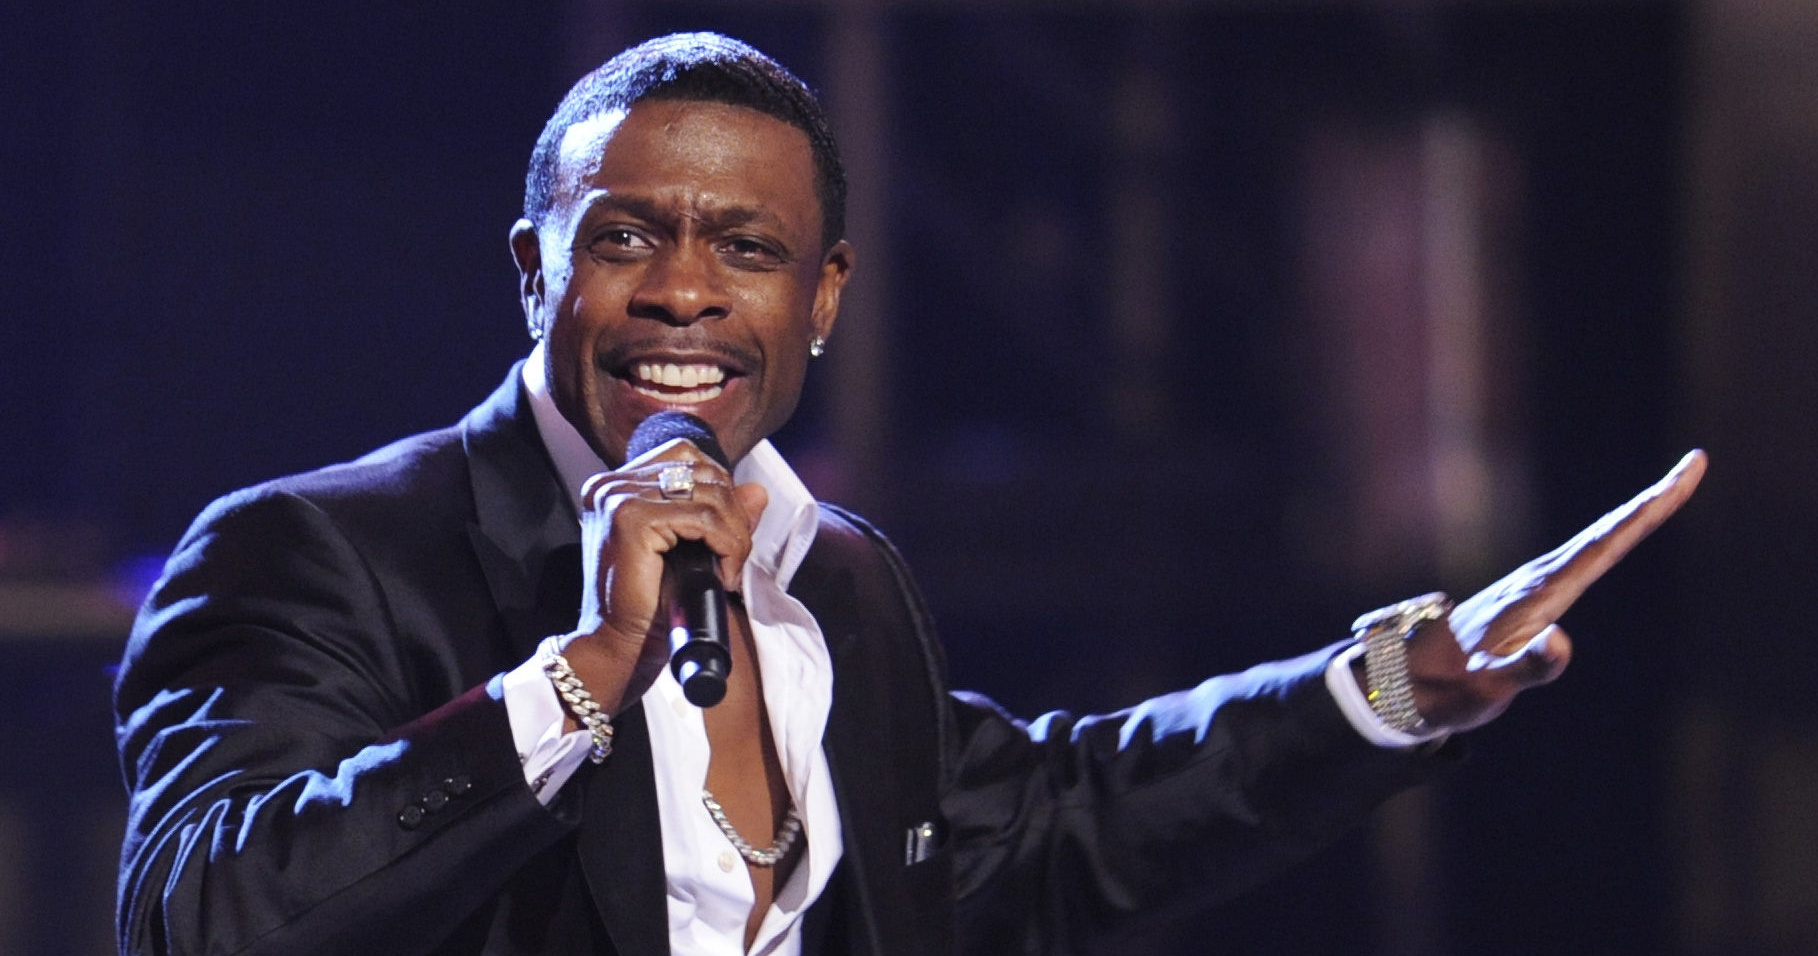 Keith Sweat, Ginuwine lead lineup of '90s R&B stars for Alamodome's 'Love & Happiness Show'